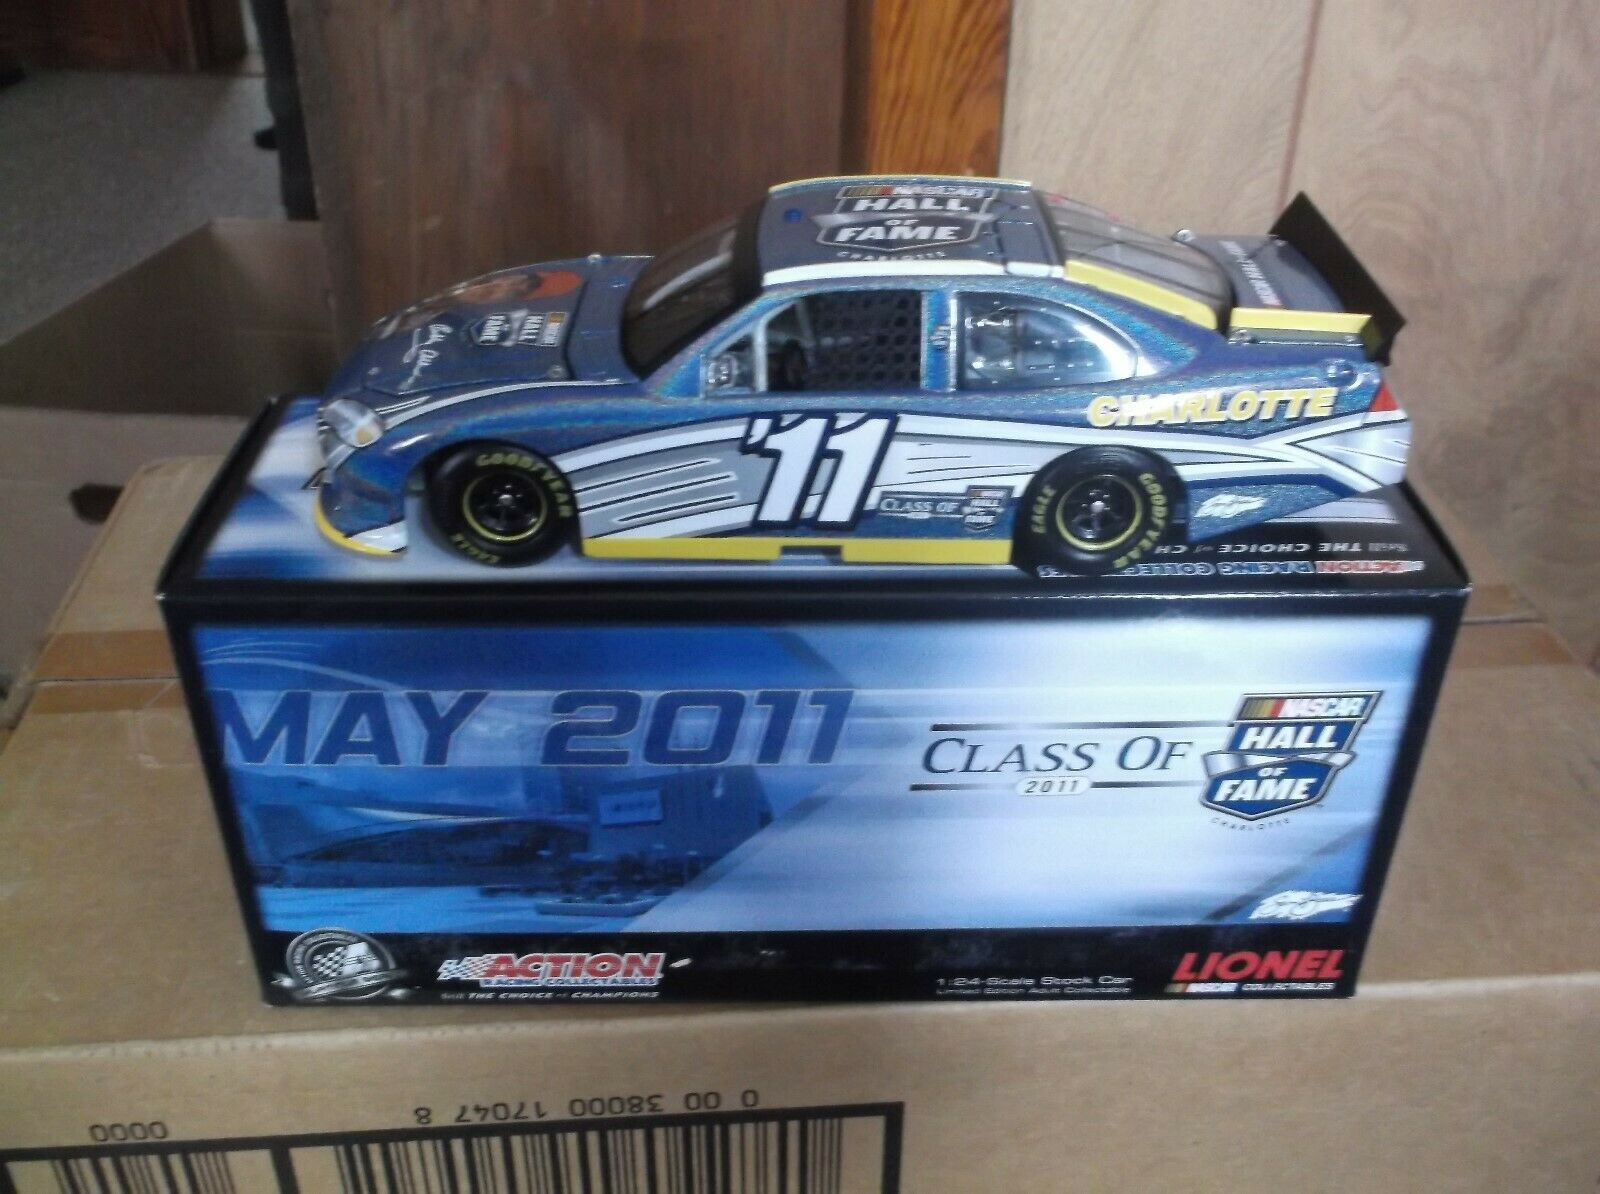 RARE 2011 BOBBY ALLISON HALL OF FAME FLASHCOAT COLOR 1 24TH SCALE DIECAST 540 89